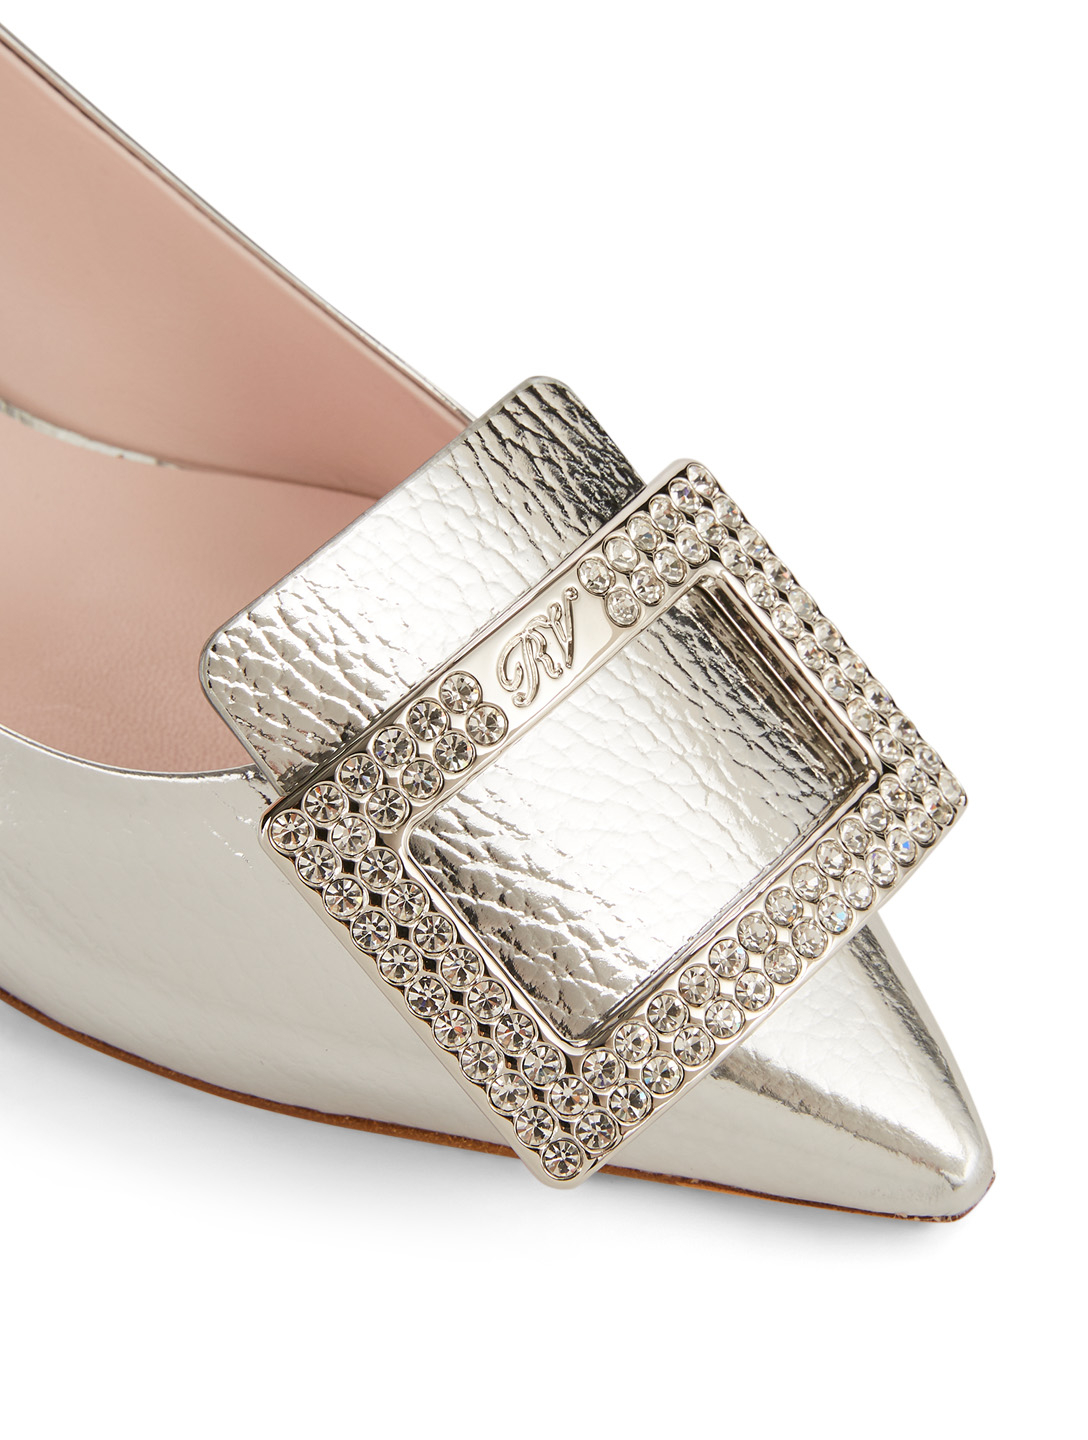 ROGER VIVIER Gommettine Leather Pumps With Strass Buckle Designers Silver